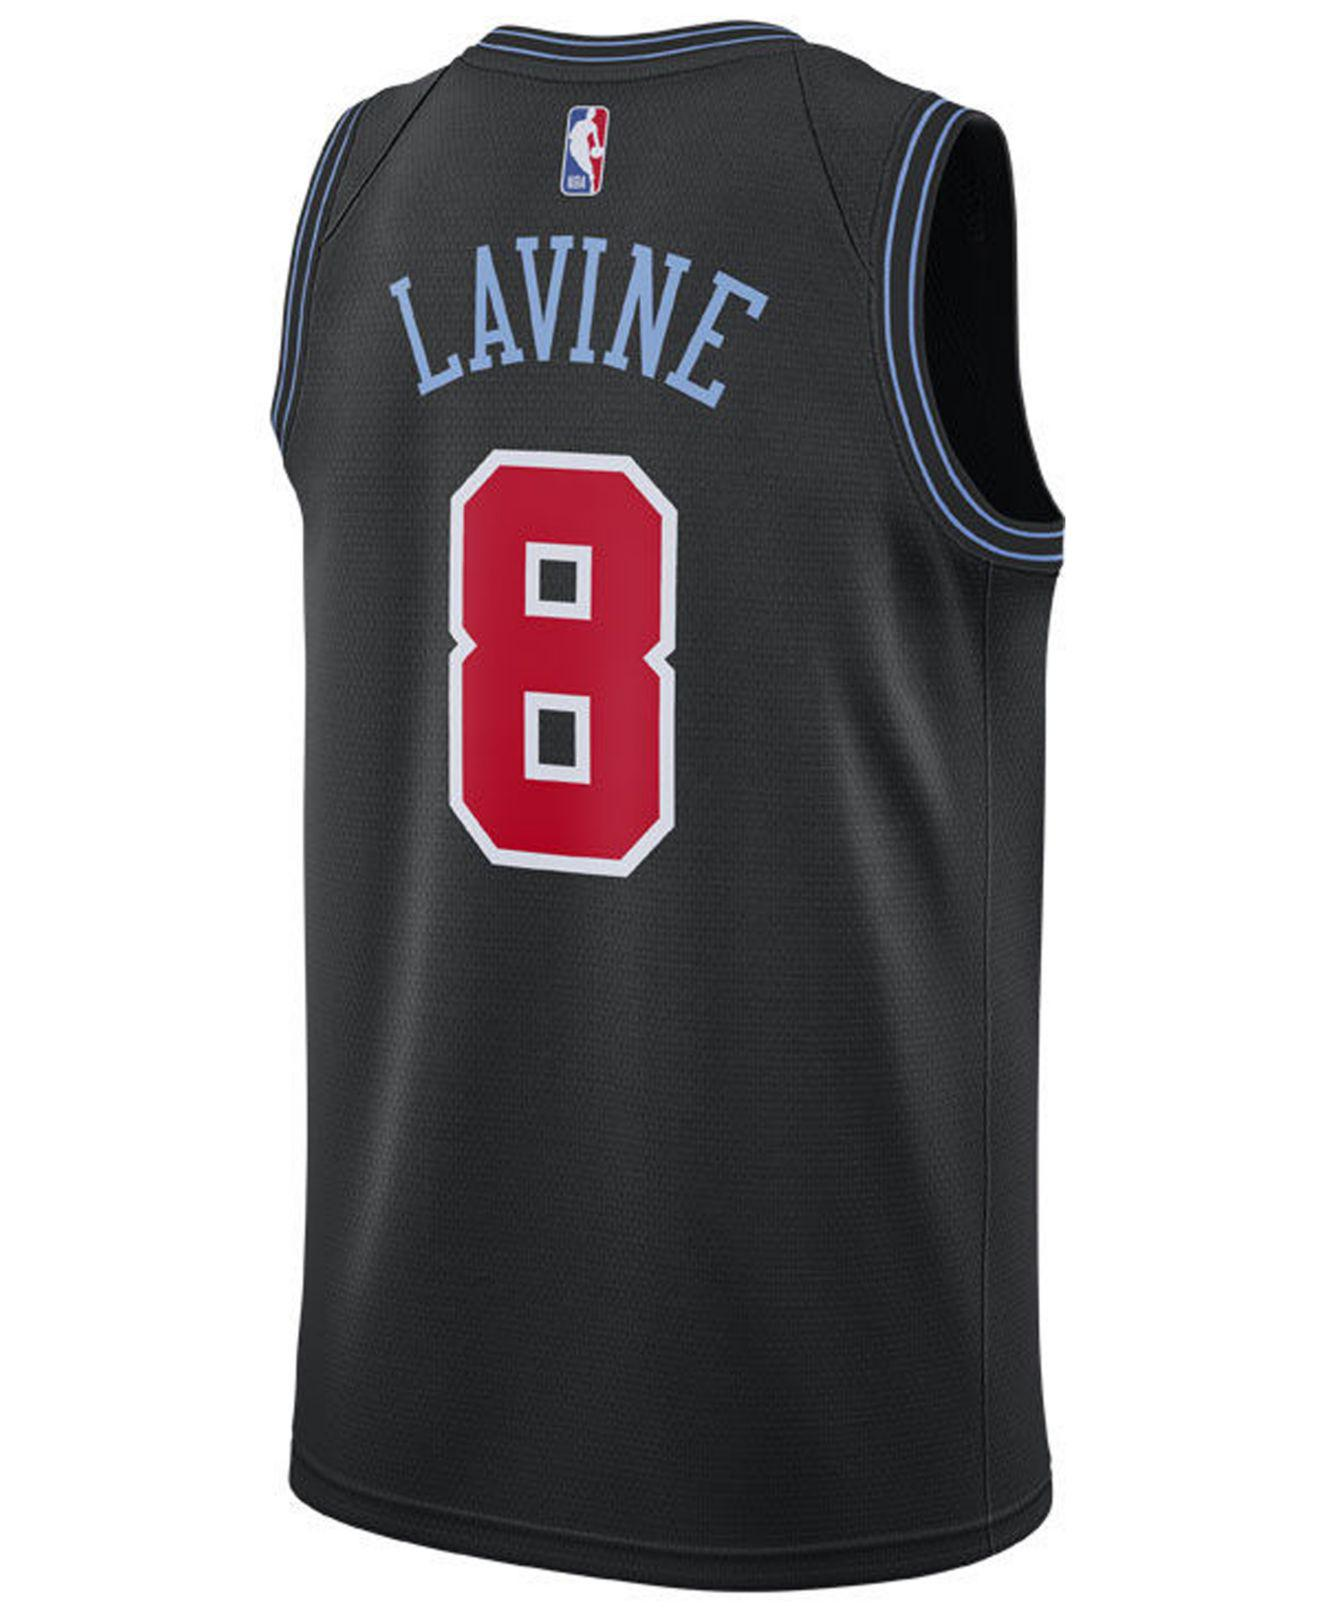 04793545228d Nike Nba Chicago Bulls Lavine City Jersey in Black for Men - Lyst